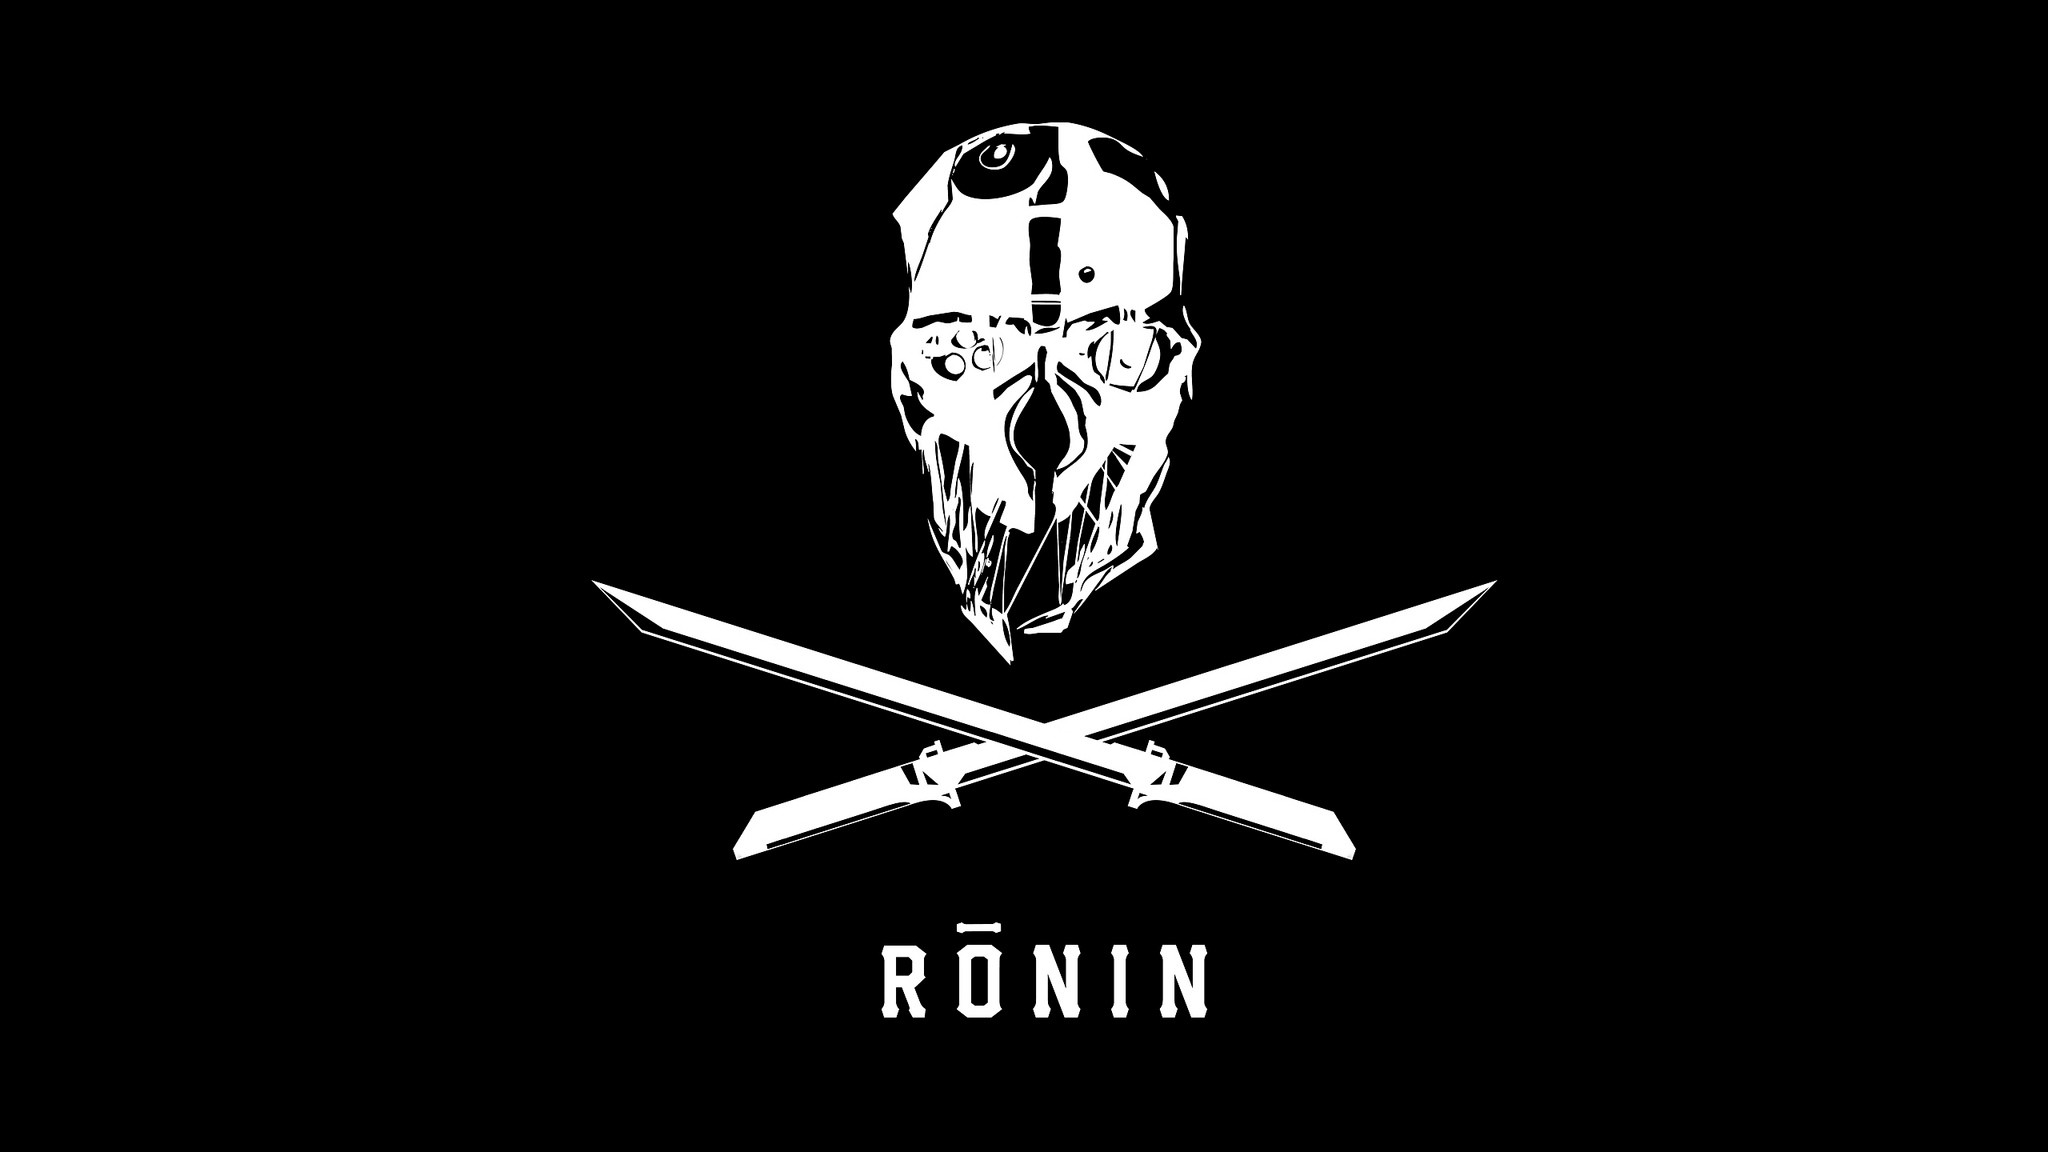 2048x1152 YCV:383 - Ronin Wallpapers, Ronin HD Pics - 36 Free Large .